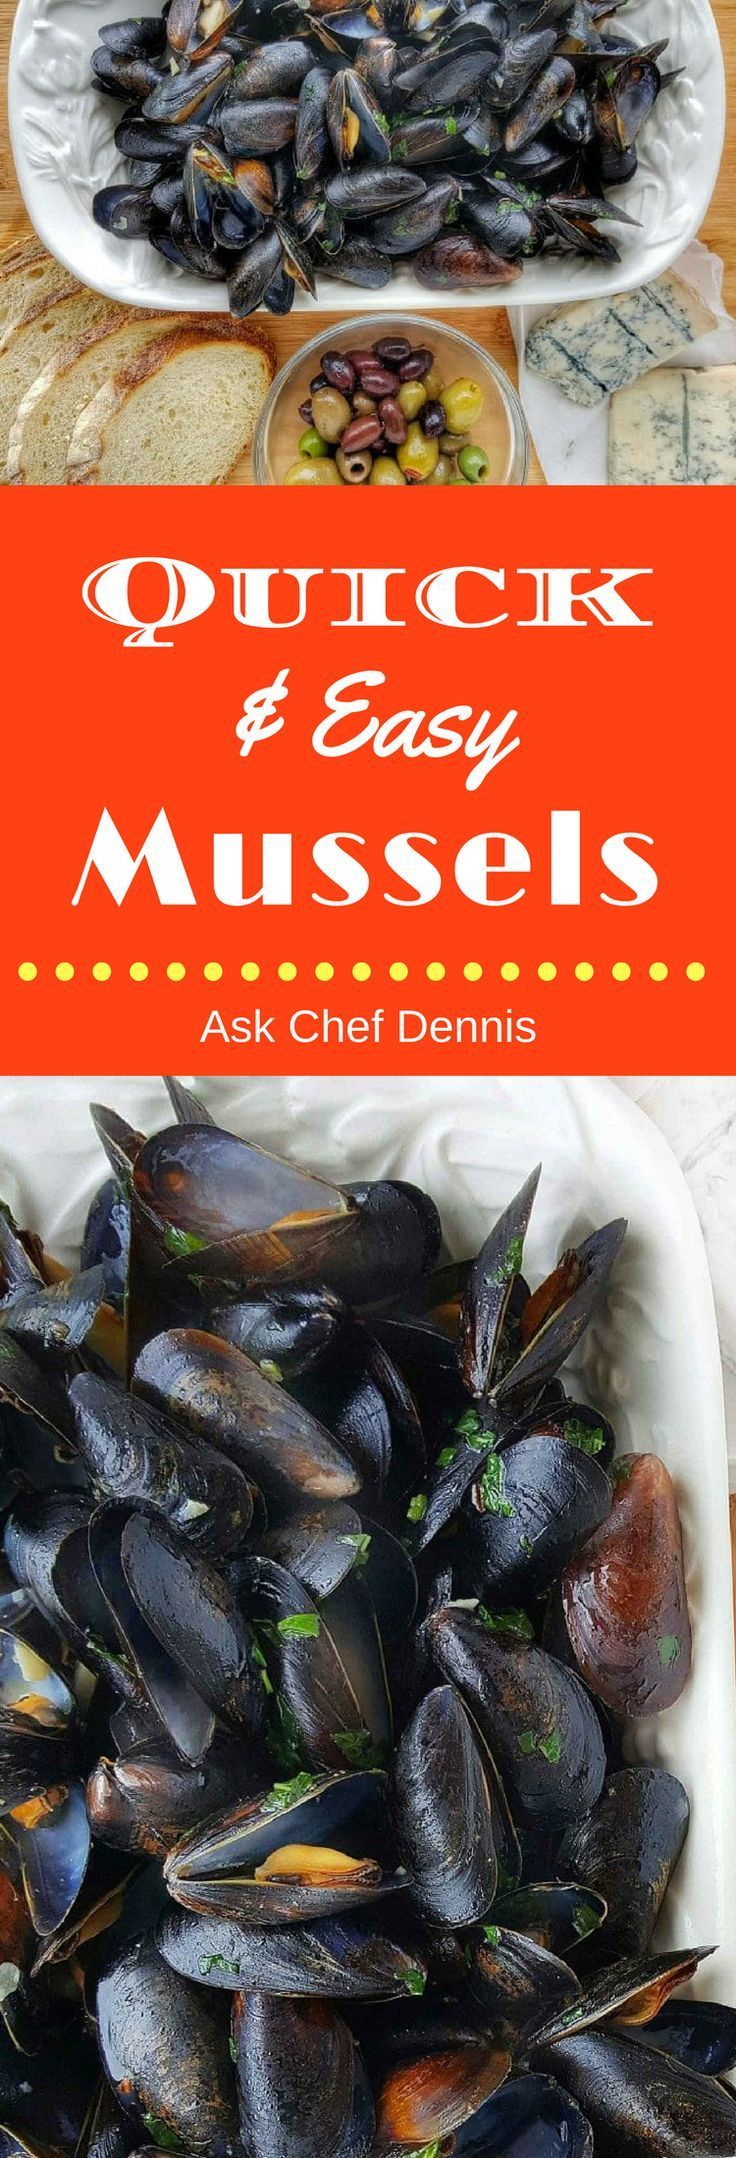 Quick Easy Mussels Recipe To Turn Your Evening Meal Into An Italian Feast Via Askchefdennis Mussels Recipe Easy Mussels Recipe Mussels